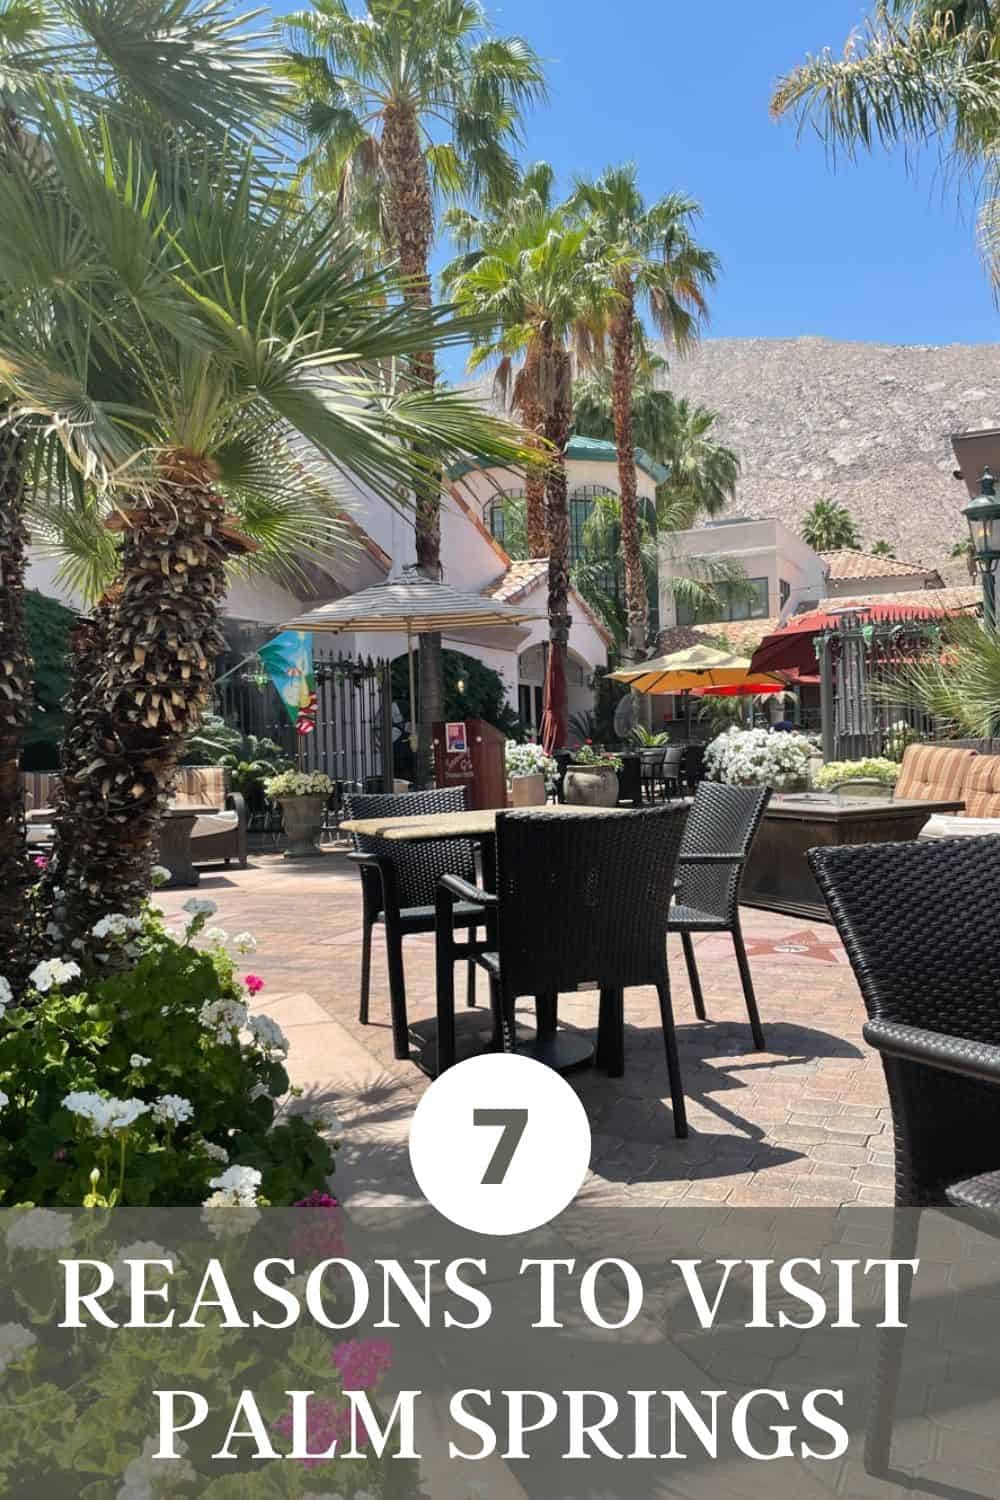 Here are 7 reasons to visit Palm Springs, California including desert jeep tours, family golf, car racing, hot spring spas and epic dining. #Palmsprings #california #visitpalmsprings